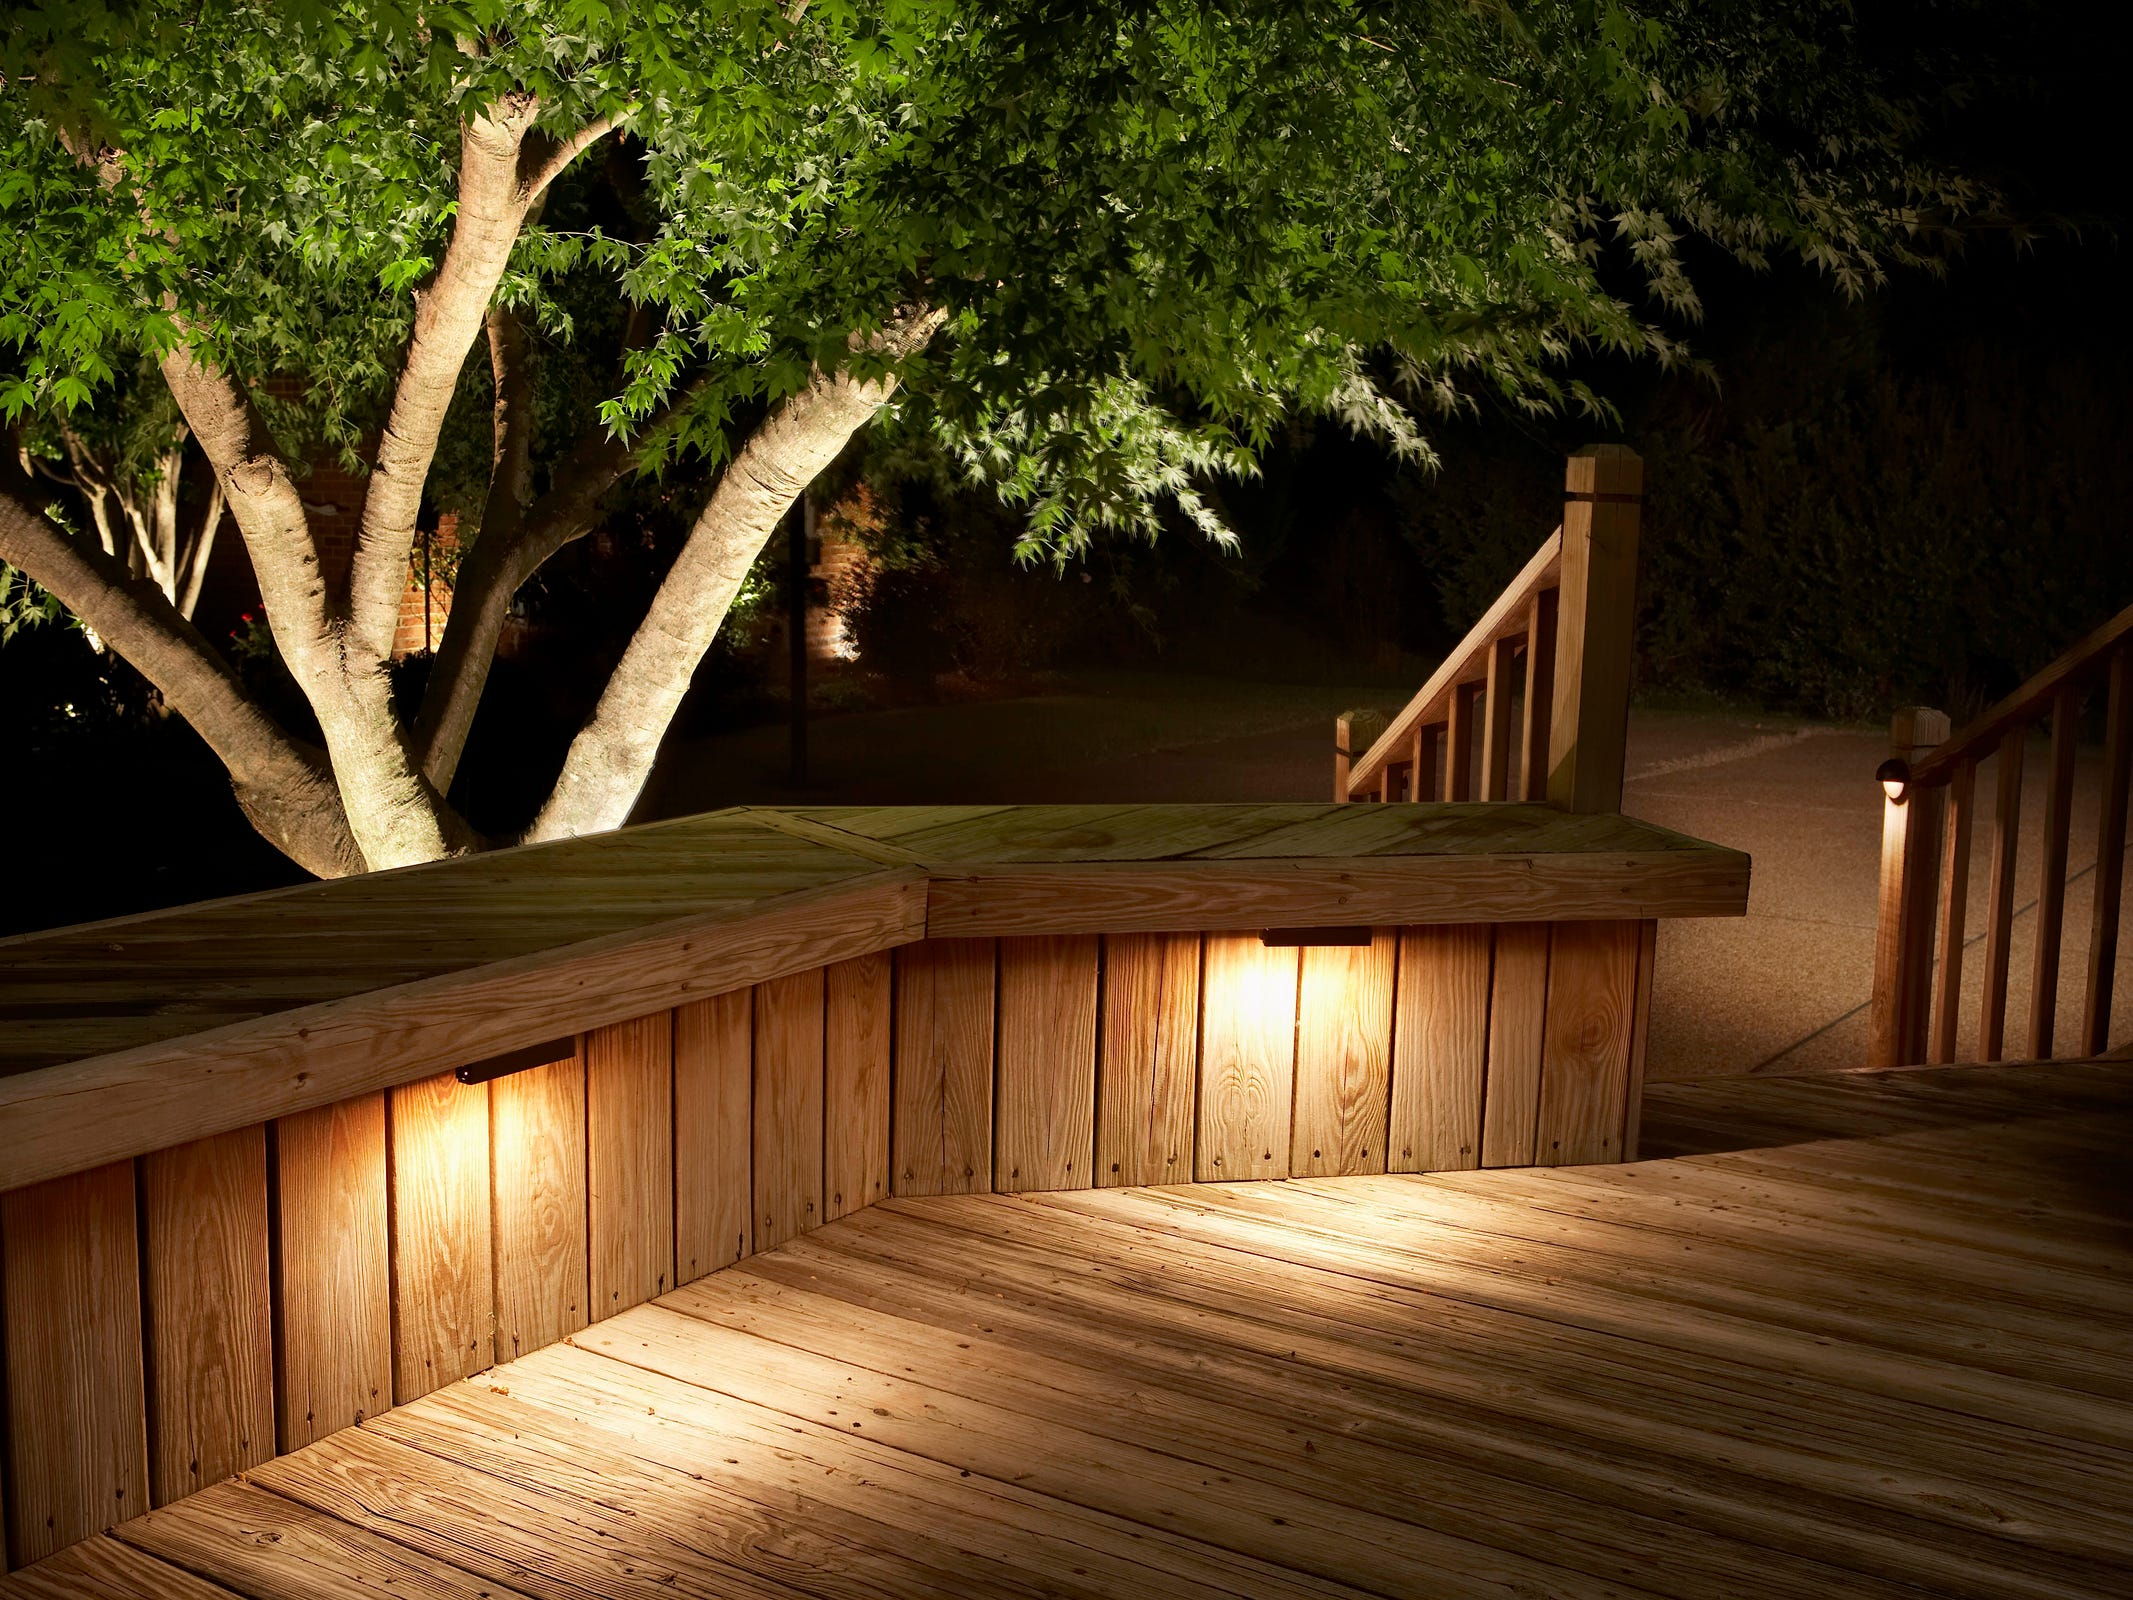 Deck lighting that shines down, and a spotlight that accents a tree add interest to a home and garden.